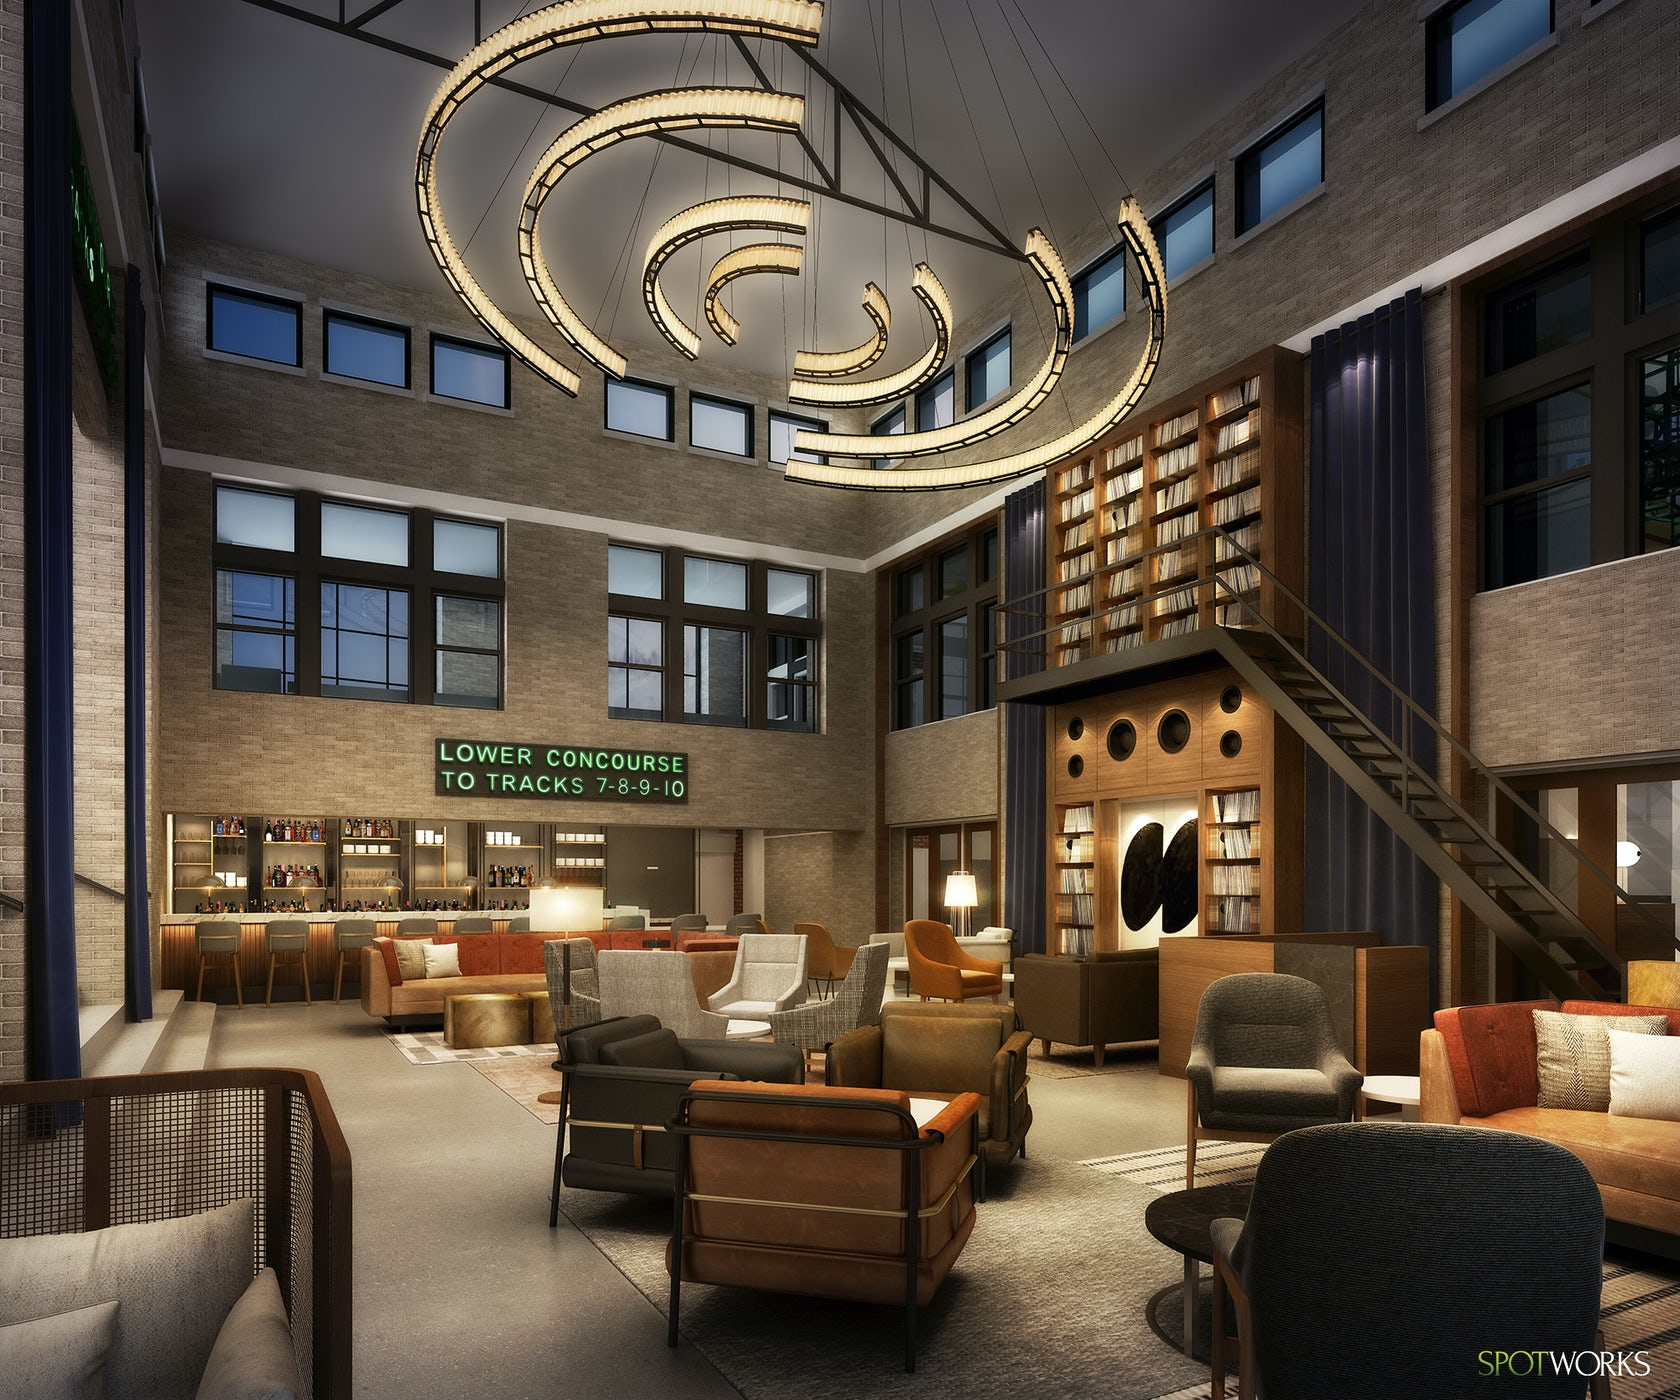 St George Auto >> Central Station Hotel, Memphis - Architizer